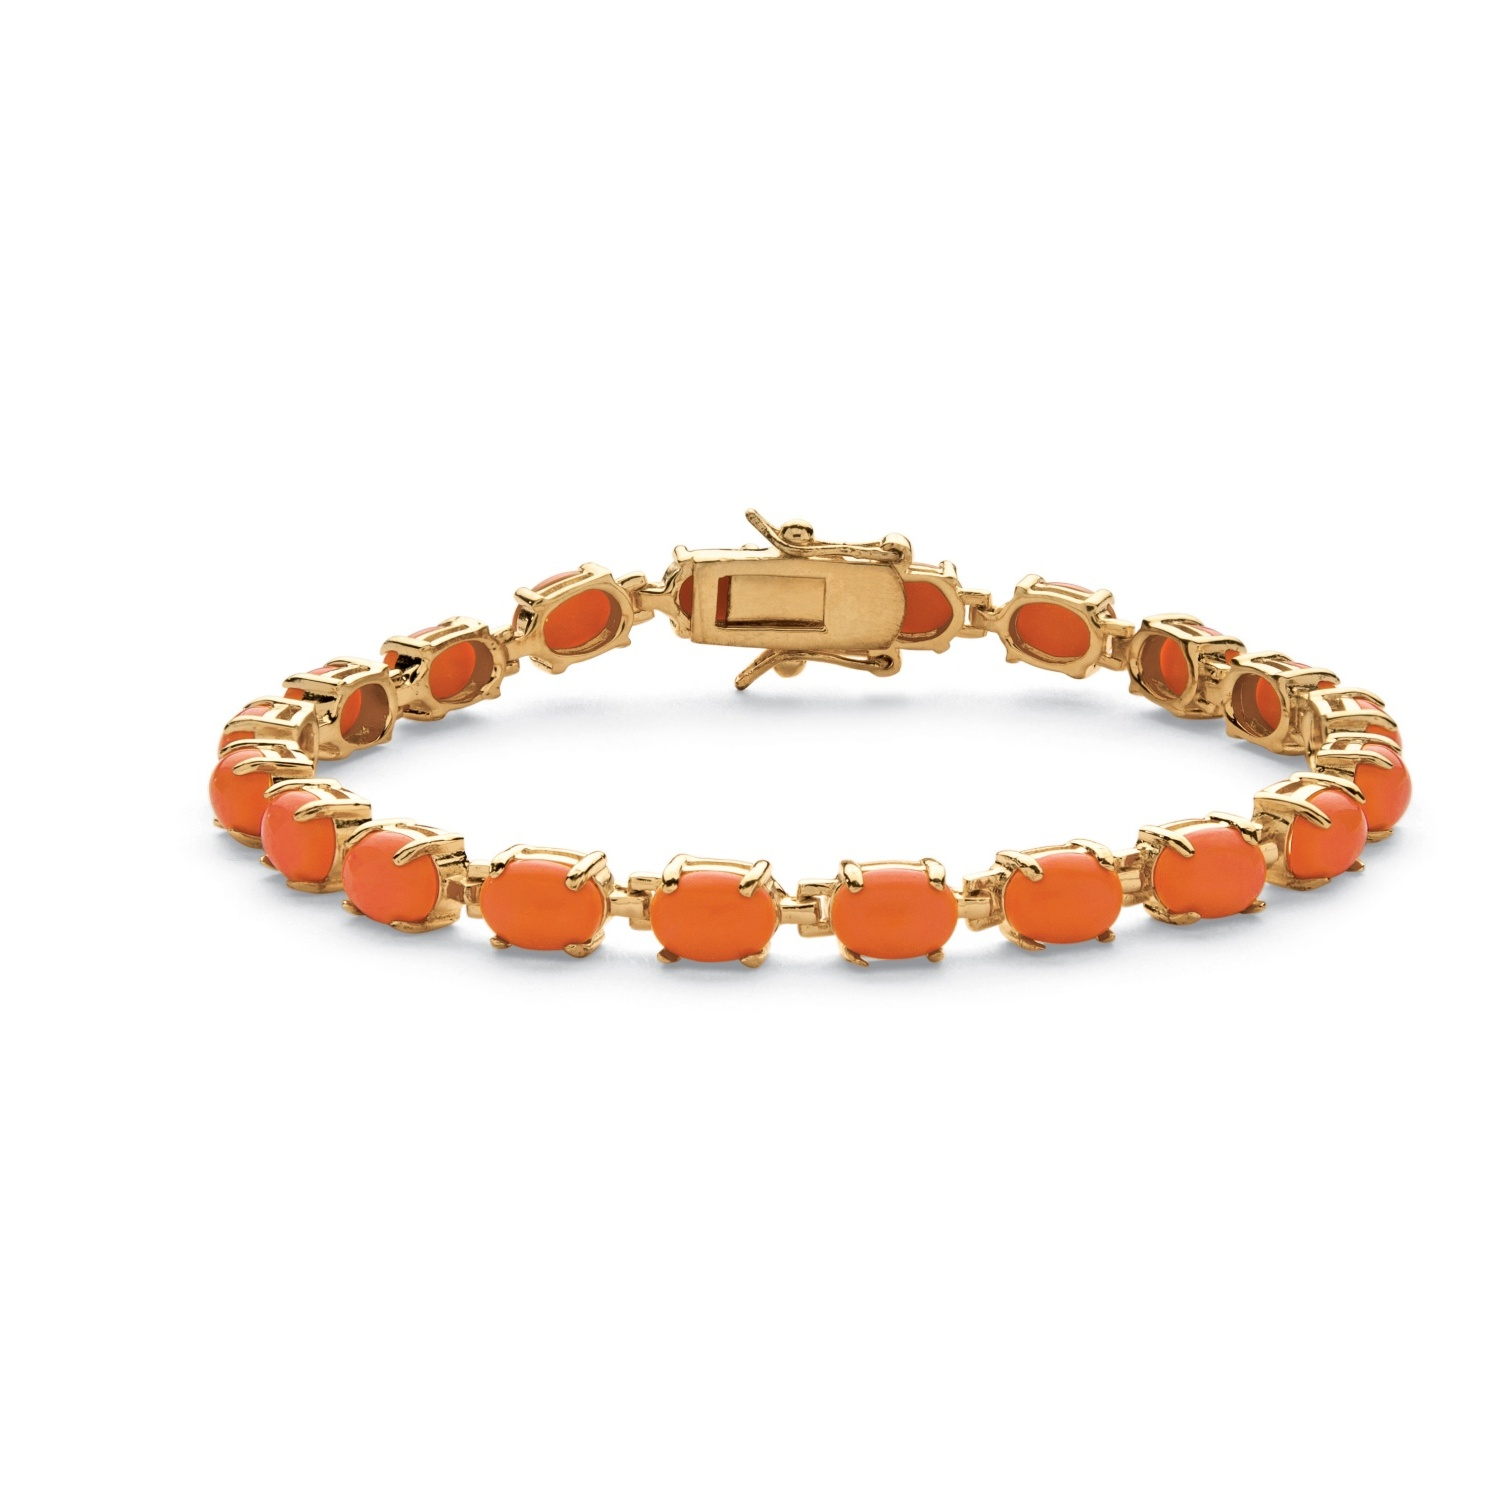 """Oval-Cut Simulated Coral Cabochon Tennis Bracelet in 14k Gold-Plated 7.5"""""""" by PalmBeach Jewelry"""